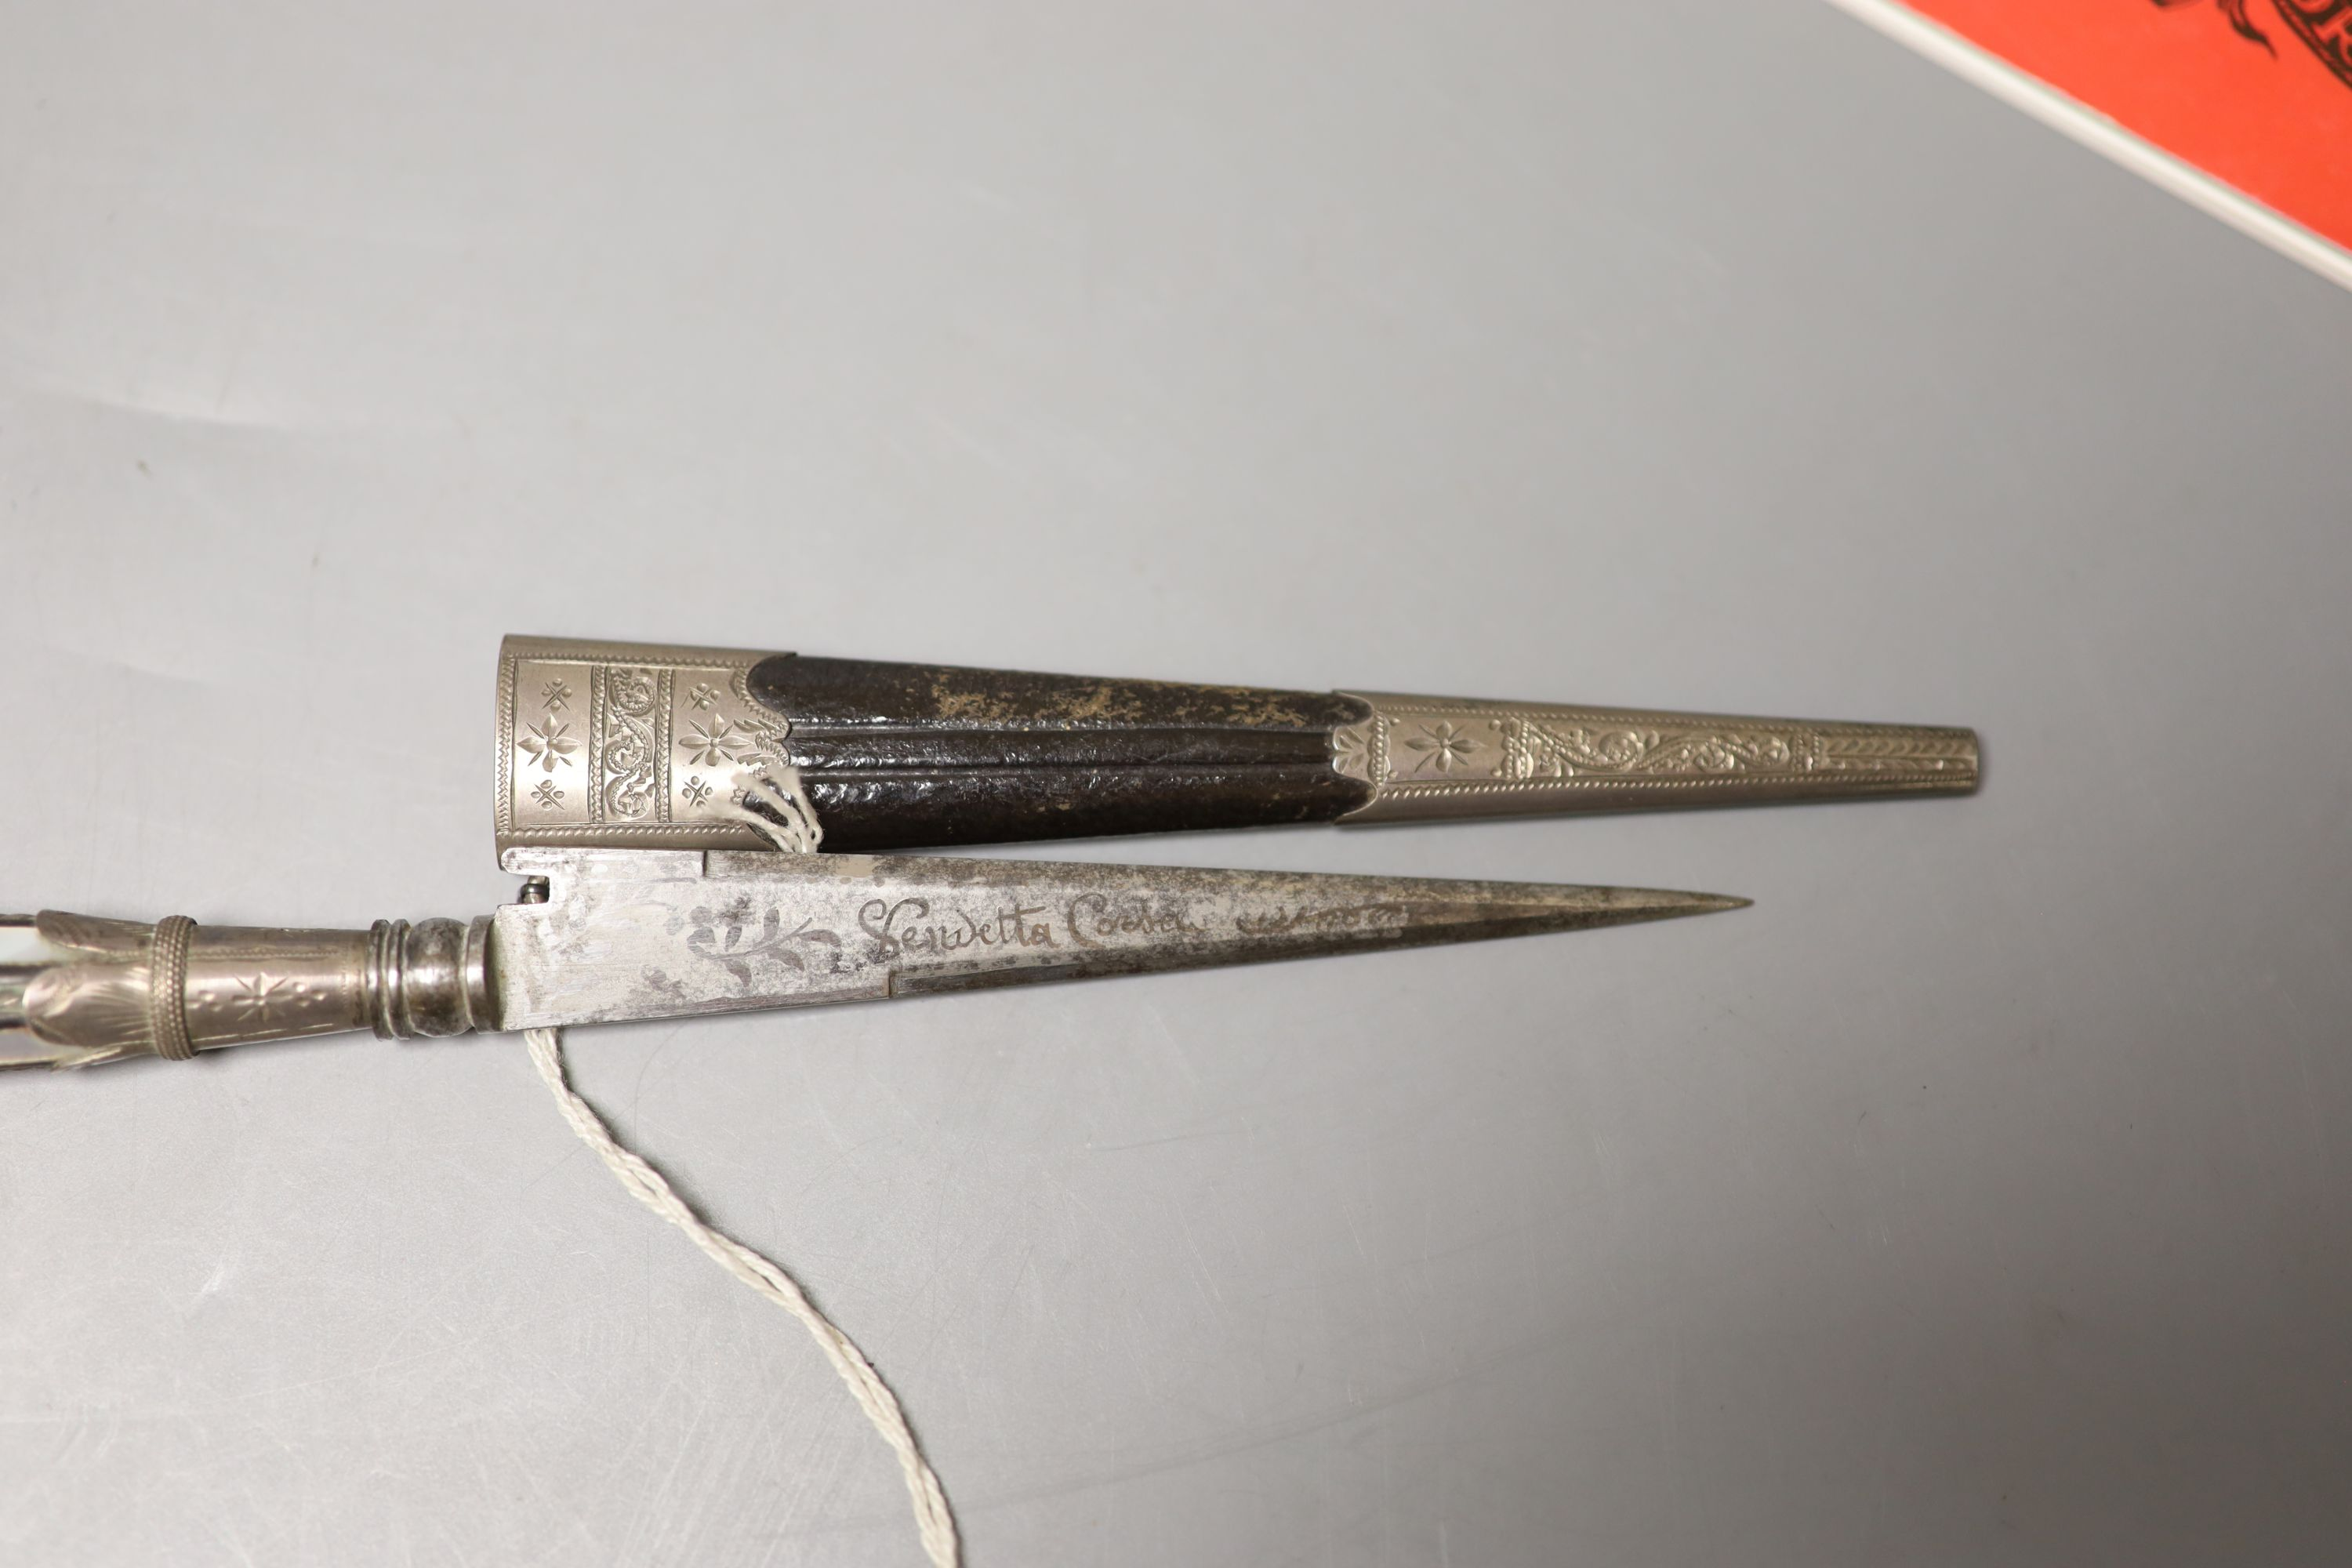 Dame Joan Sutherland memorabilia, including some Dirk sometimes used by Sutherland on stage - see - Image 5 of 7